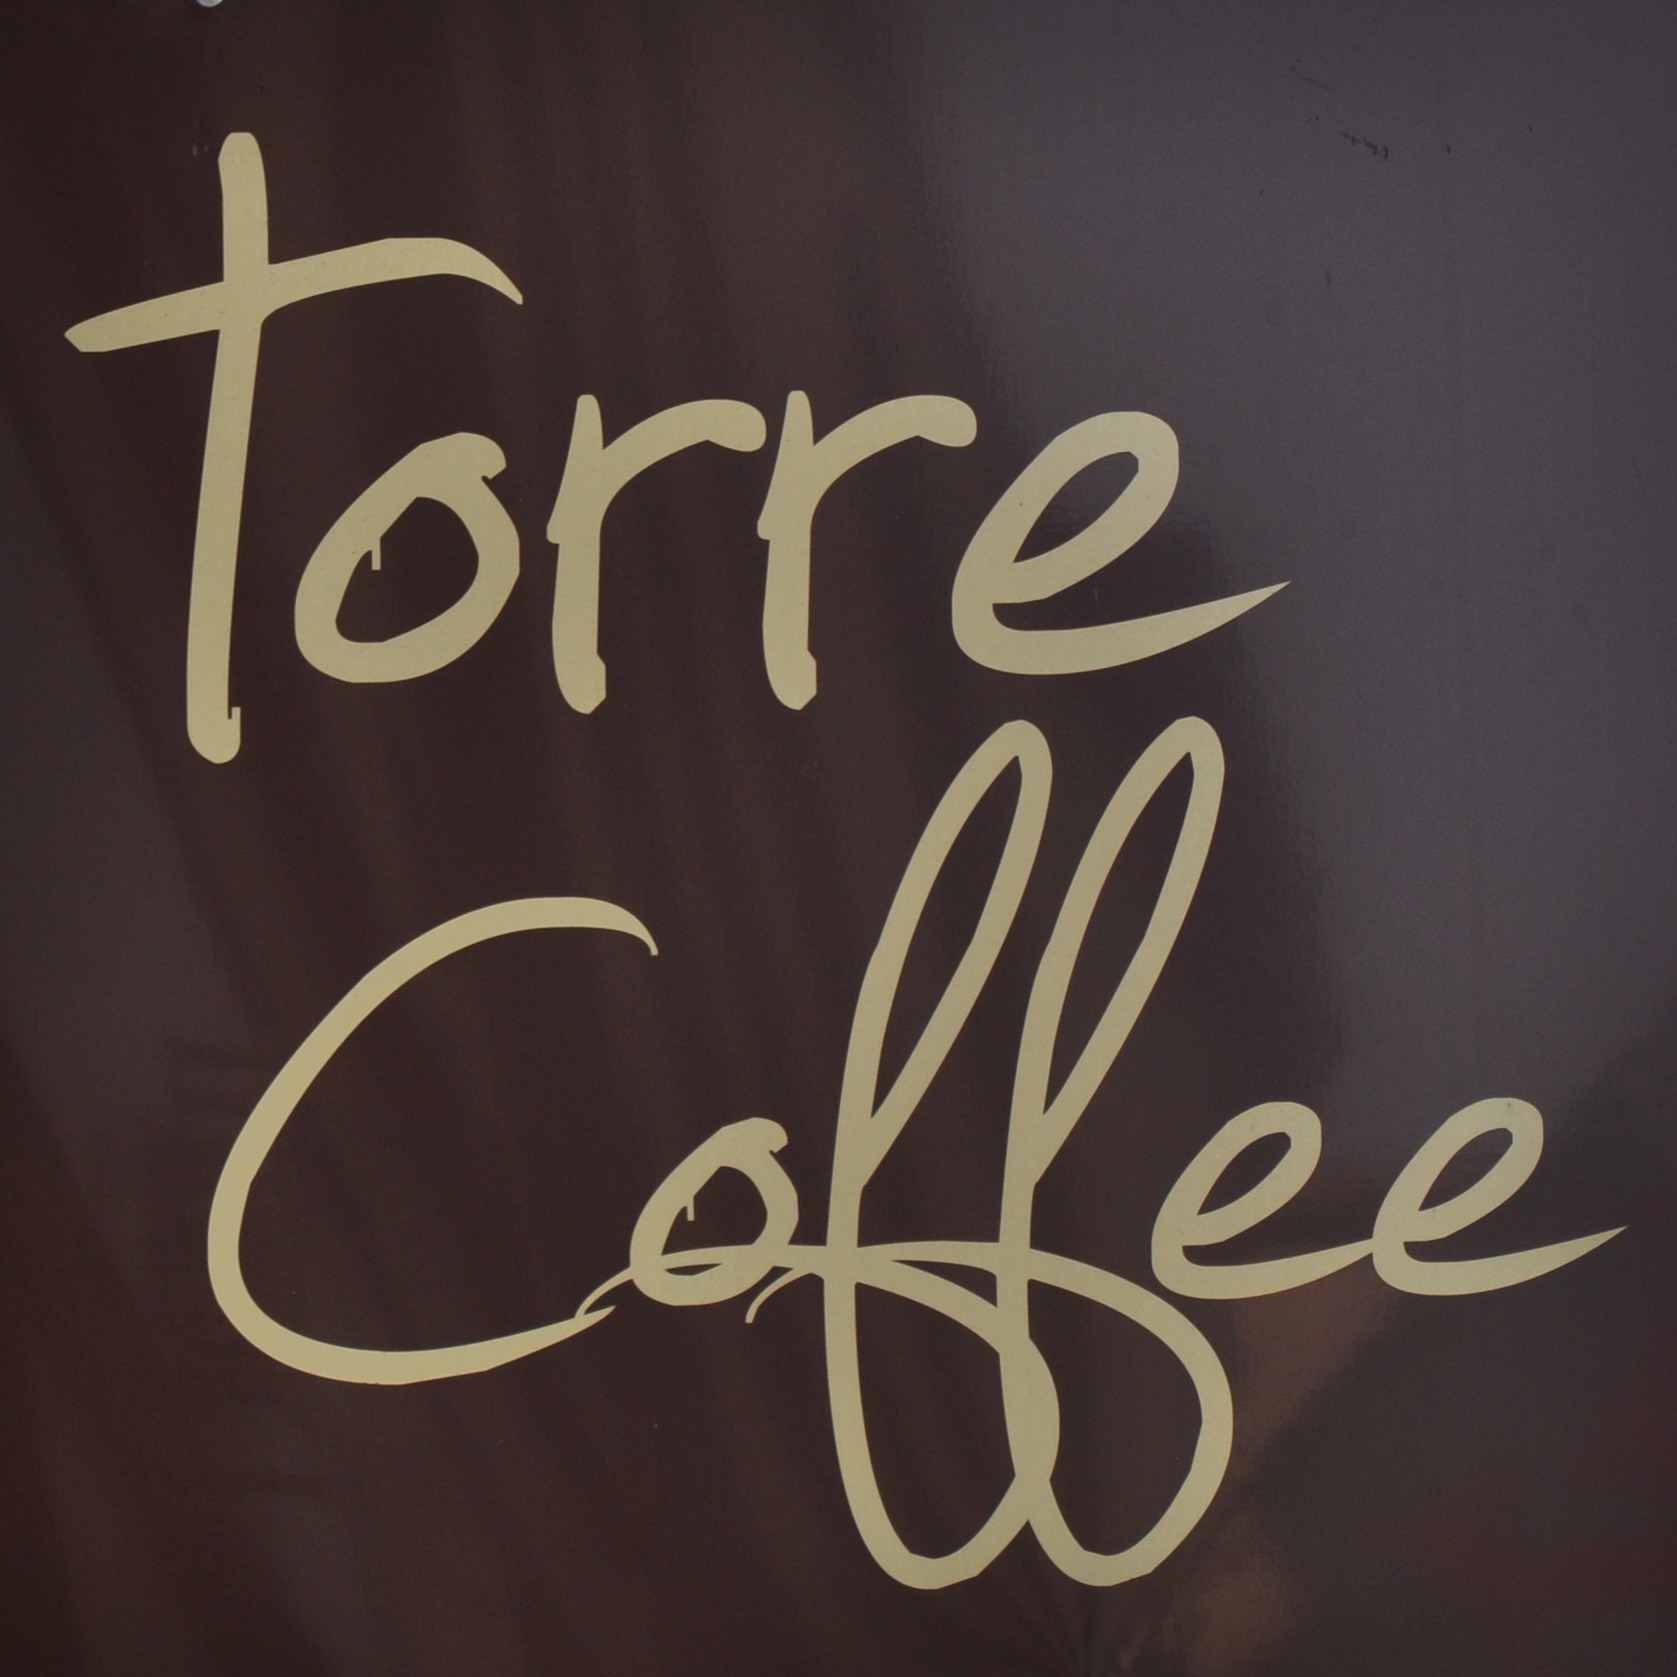 "Torre Coffee, from the sign hanging outside the shop: the words ""torre coffee"" written in a cursive script, cream on brown."